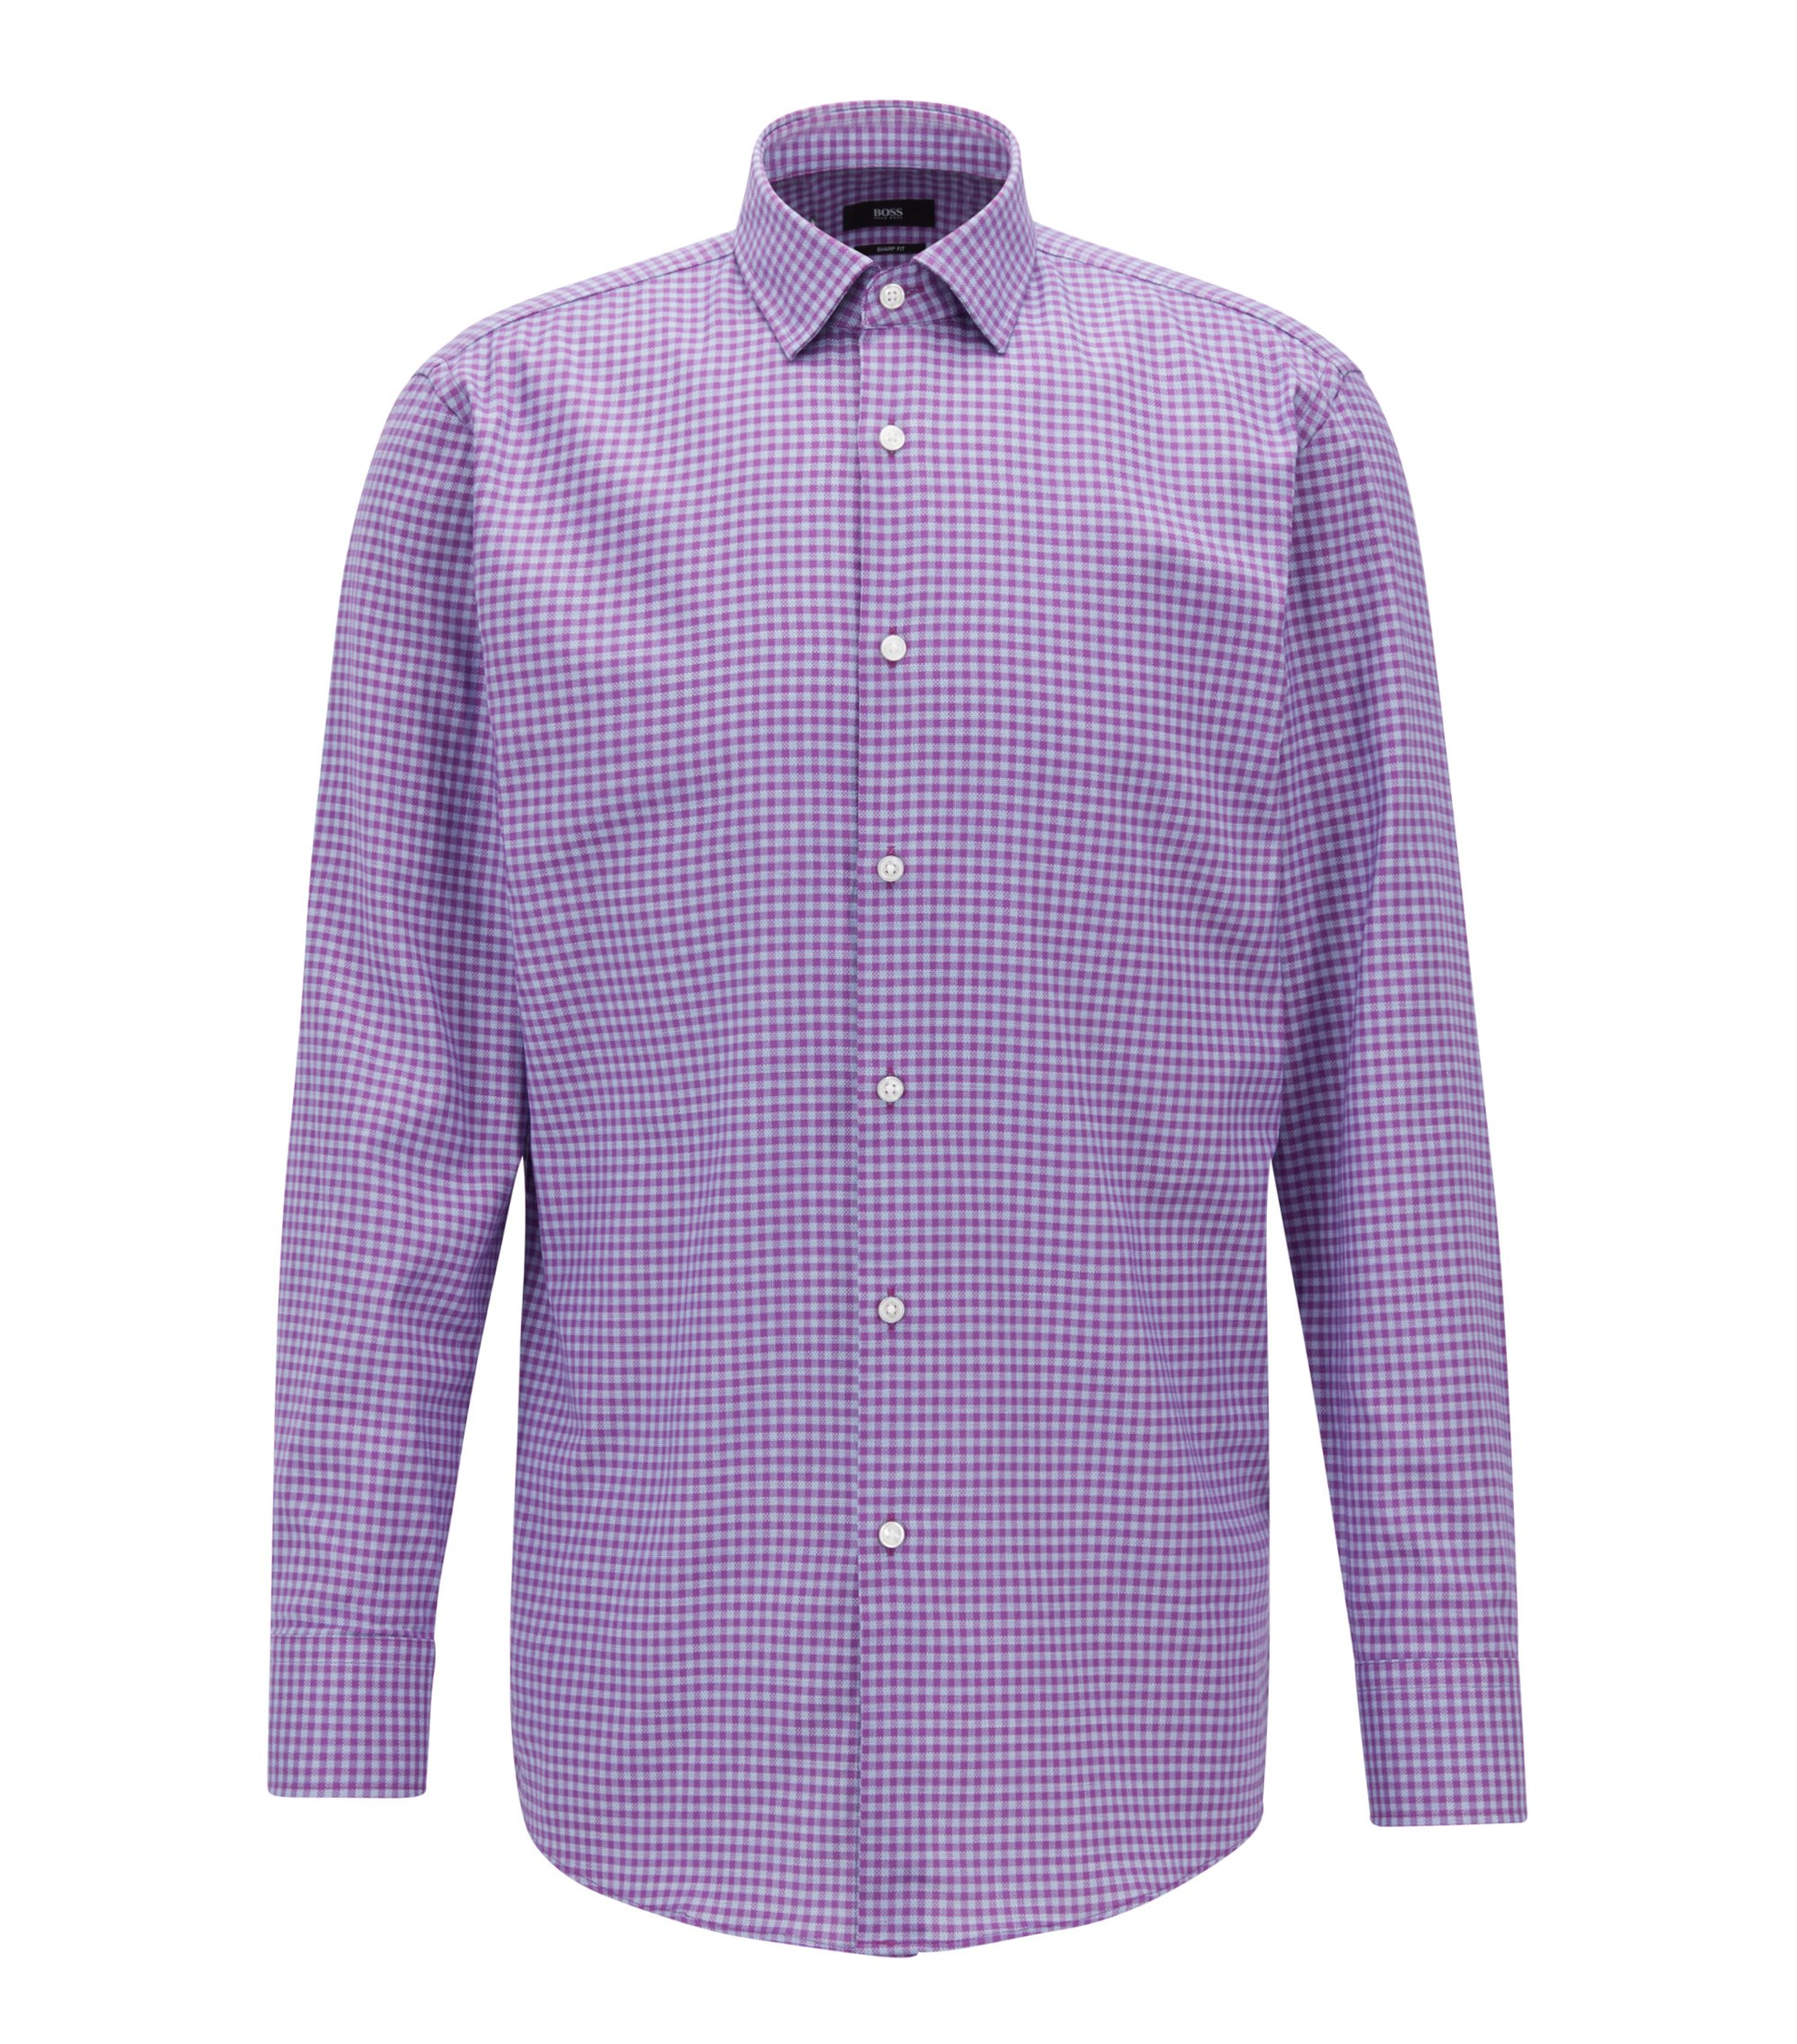 Slim-fit shirt in cotton twill with Vichy check pattern, Dark pink